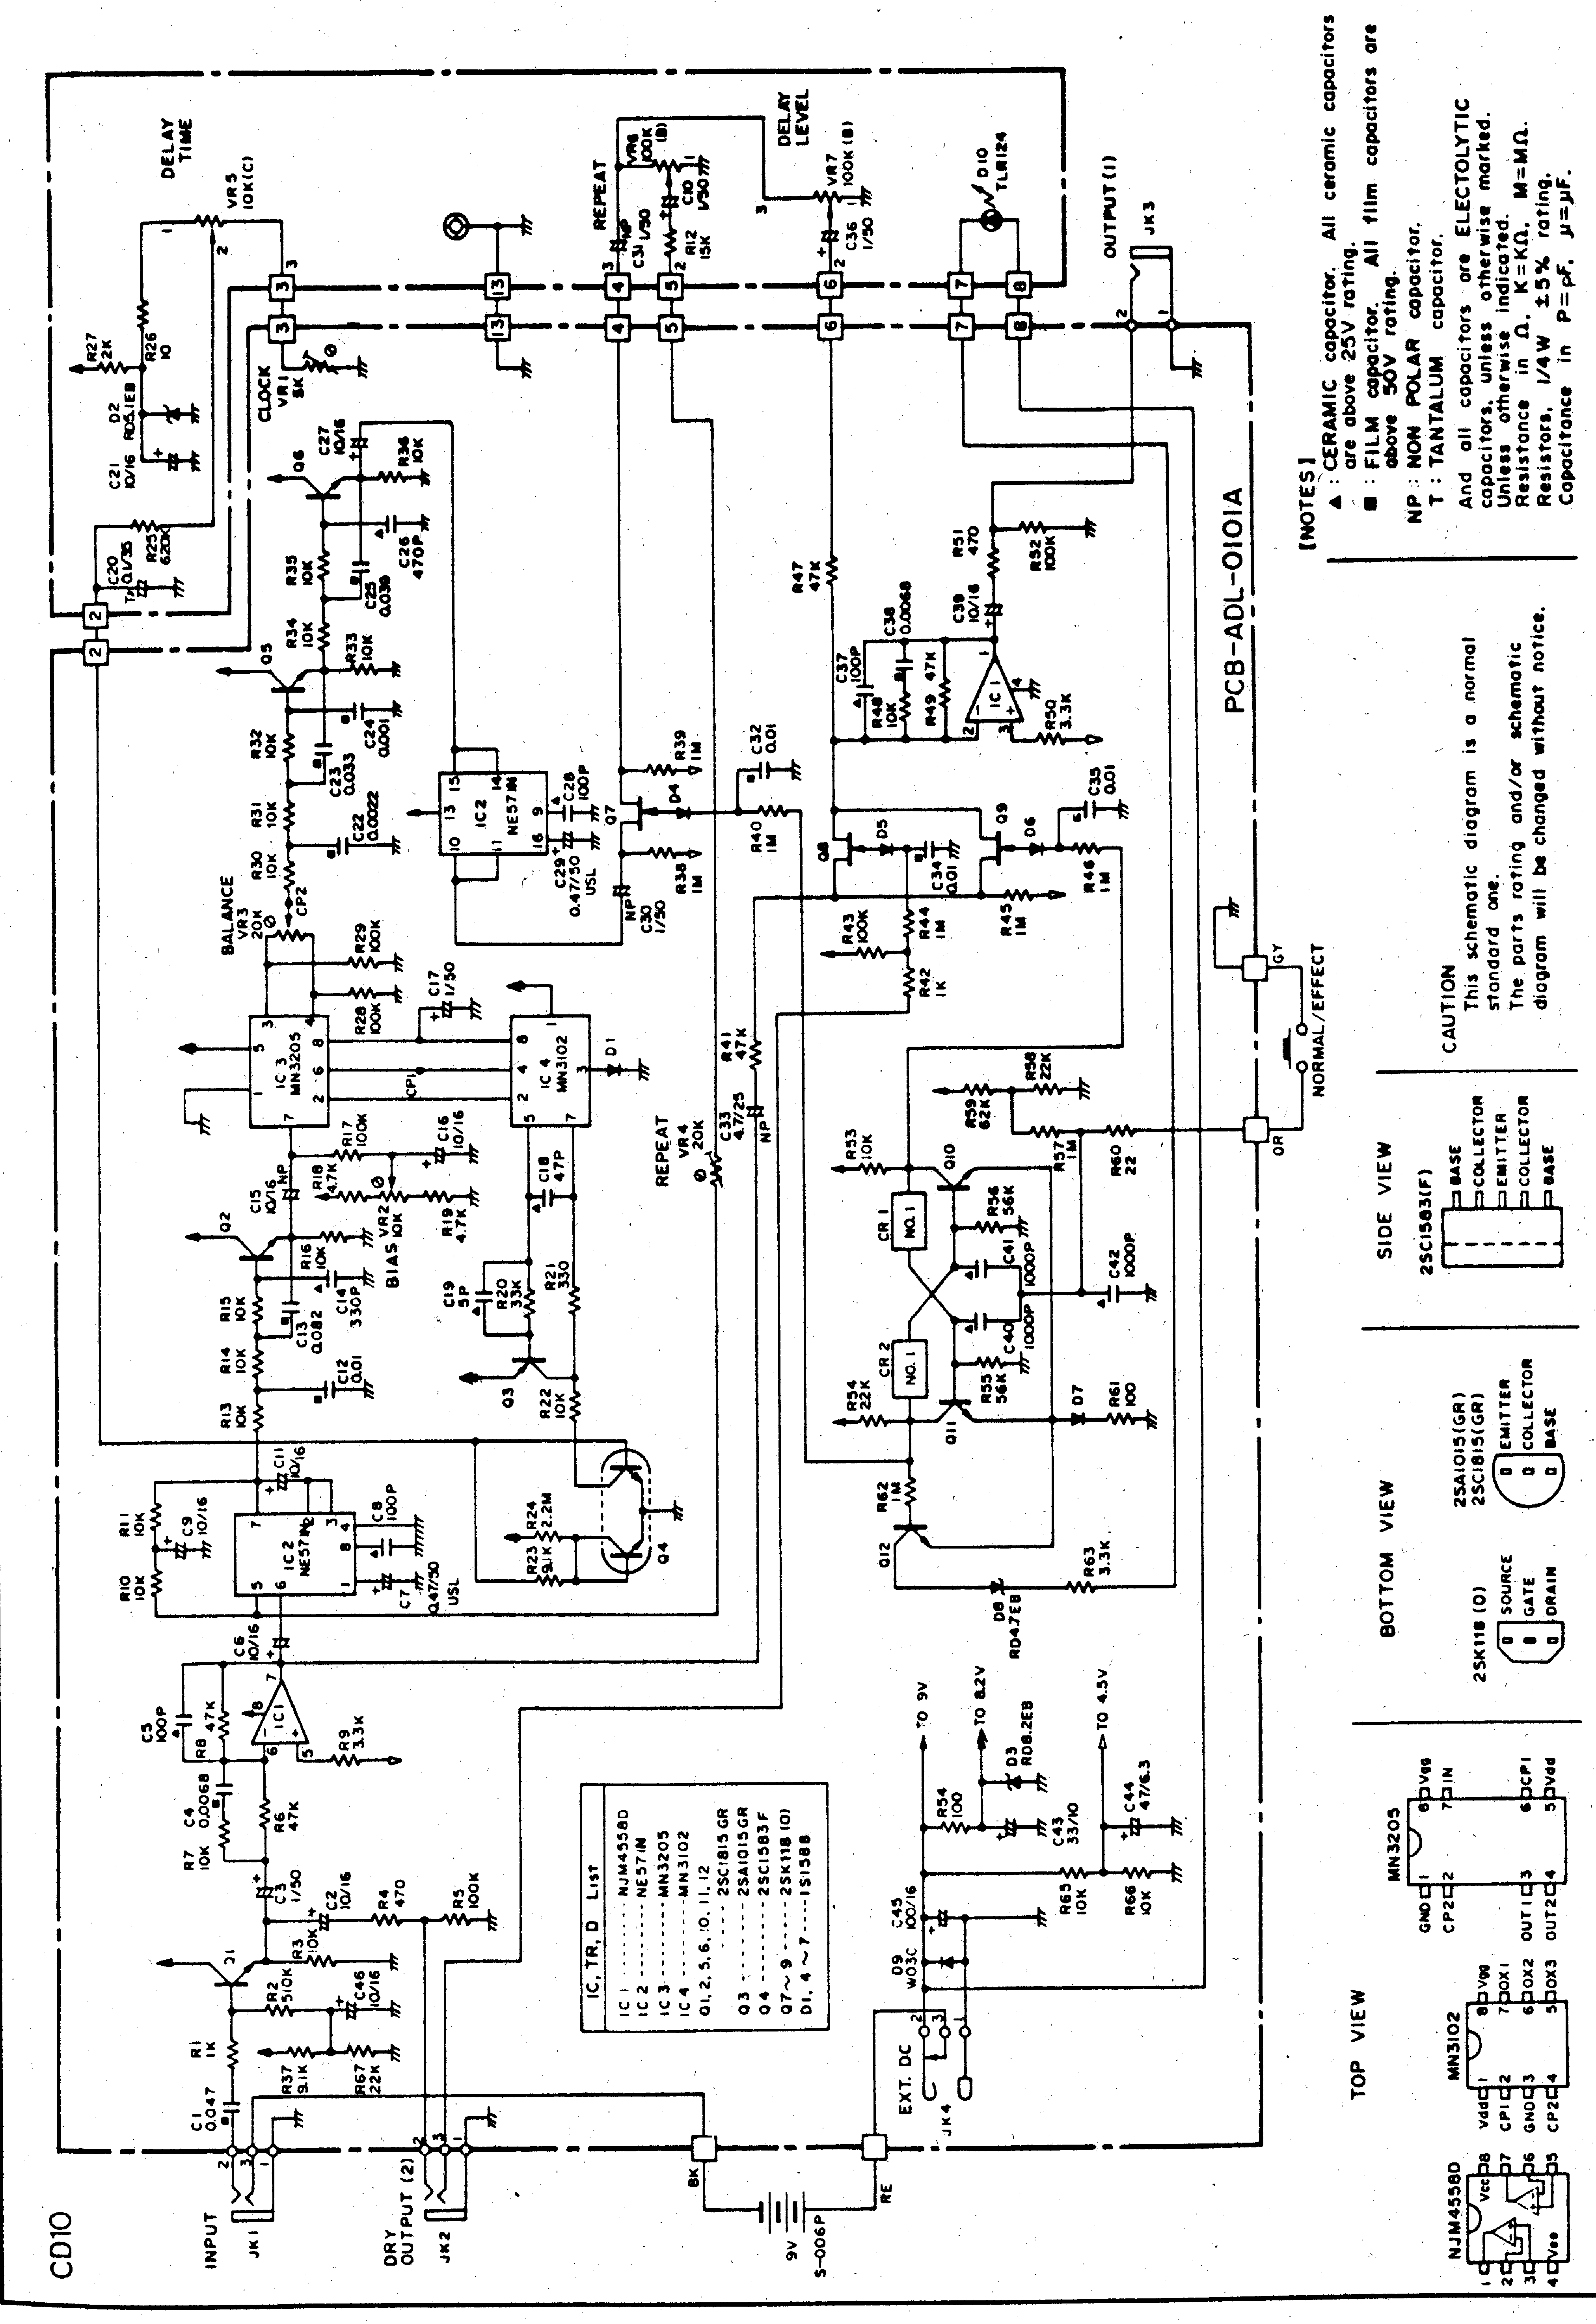 Ibanez Ph7 Service Manual Free Download Schematics